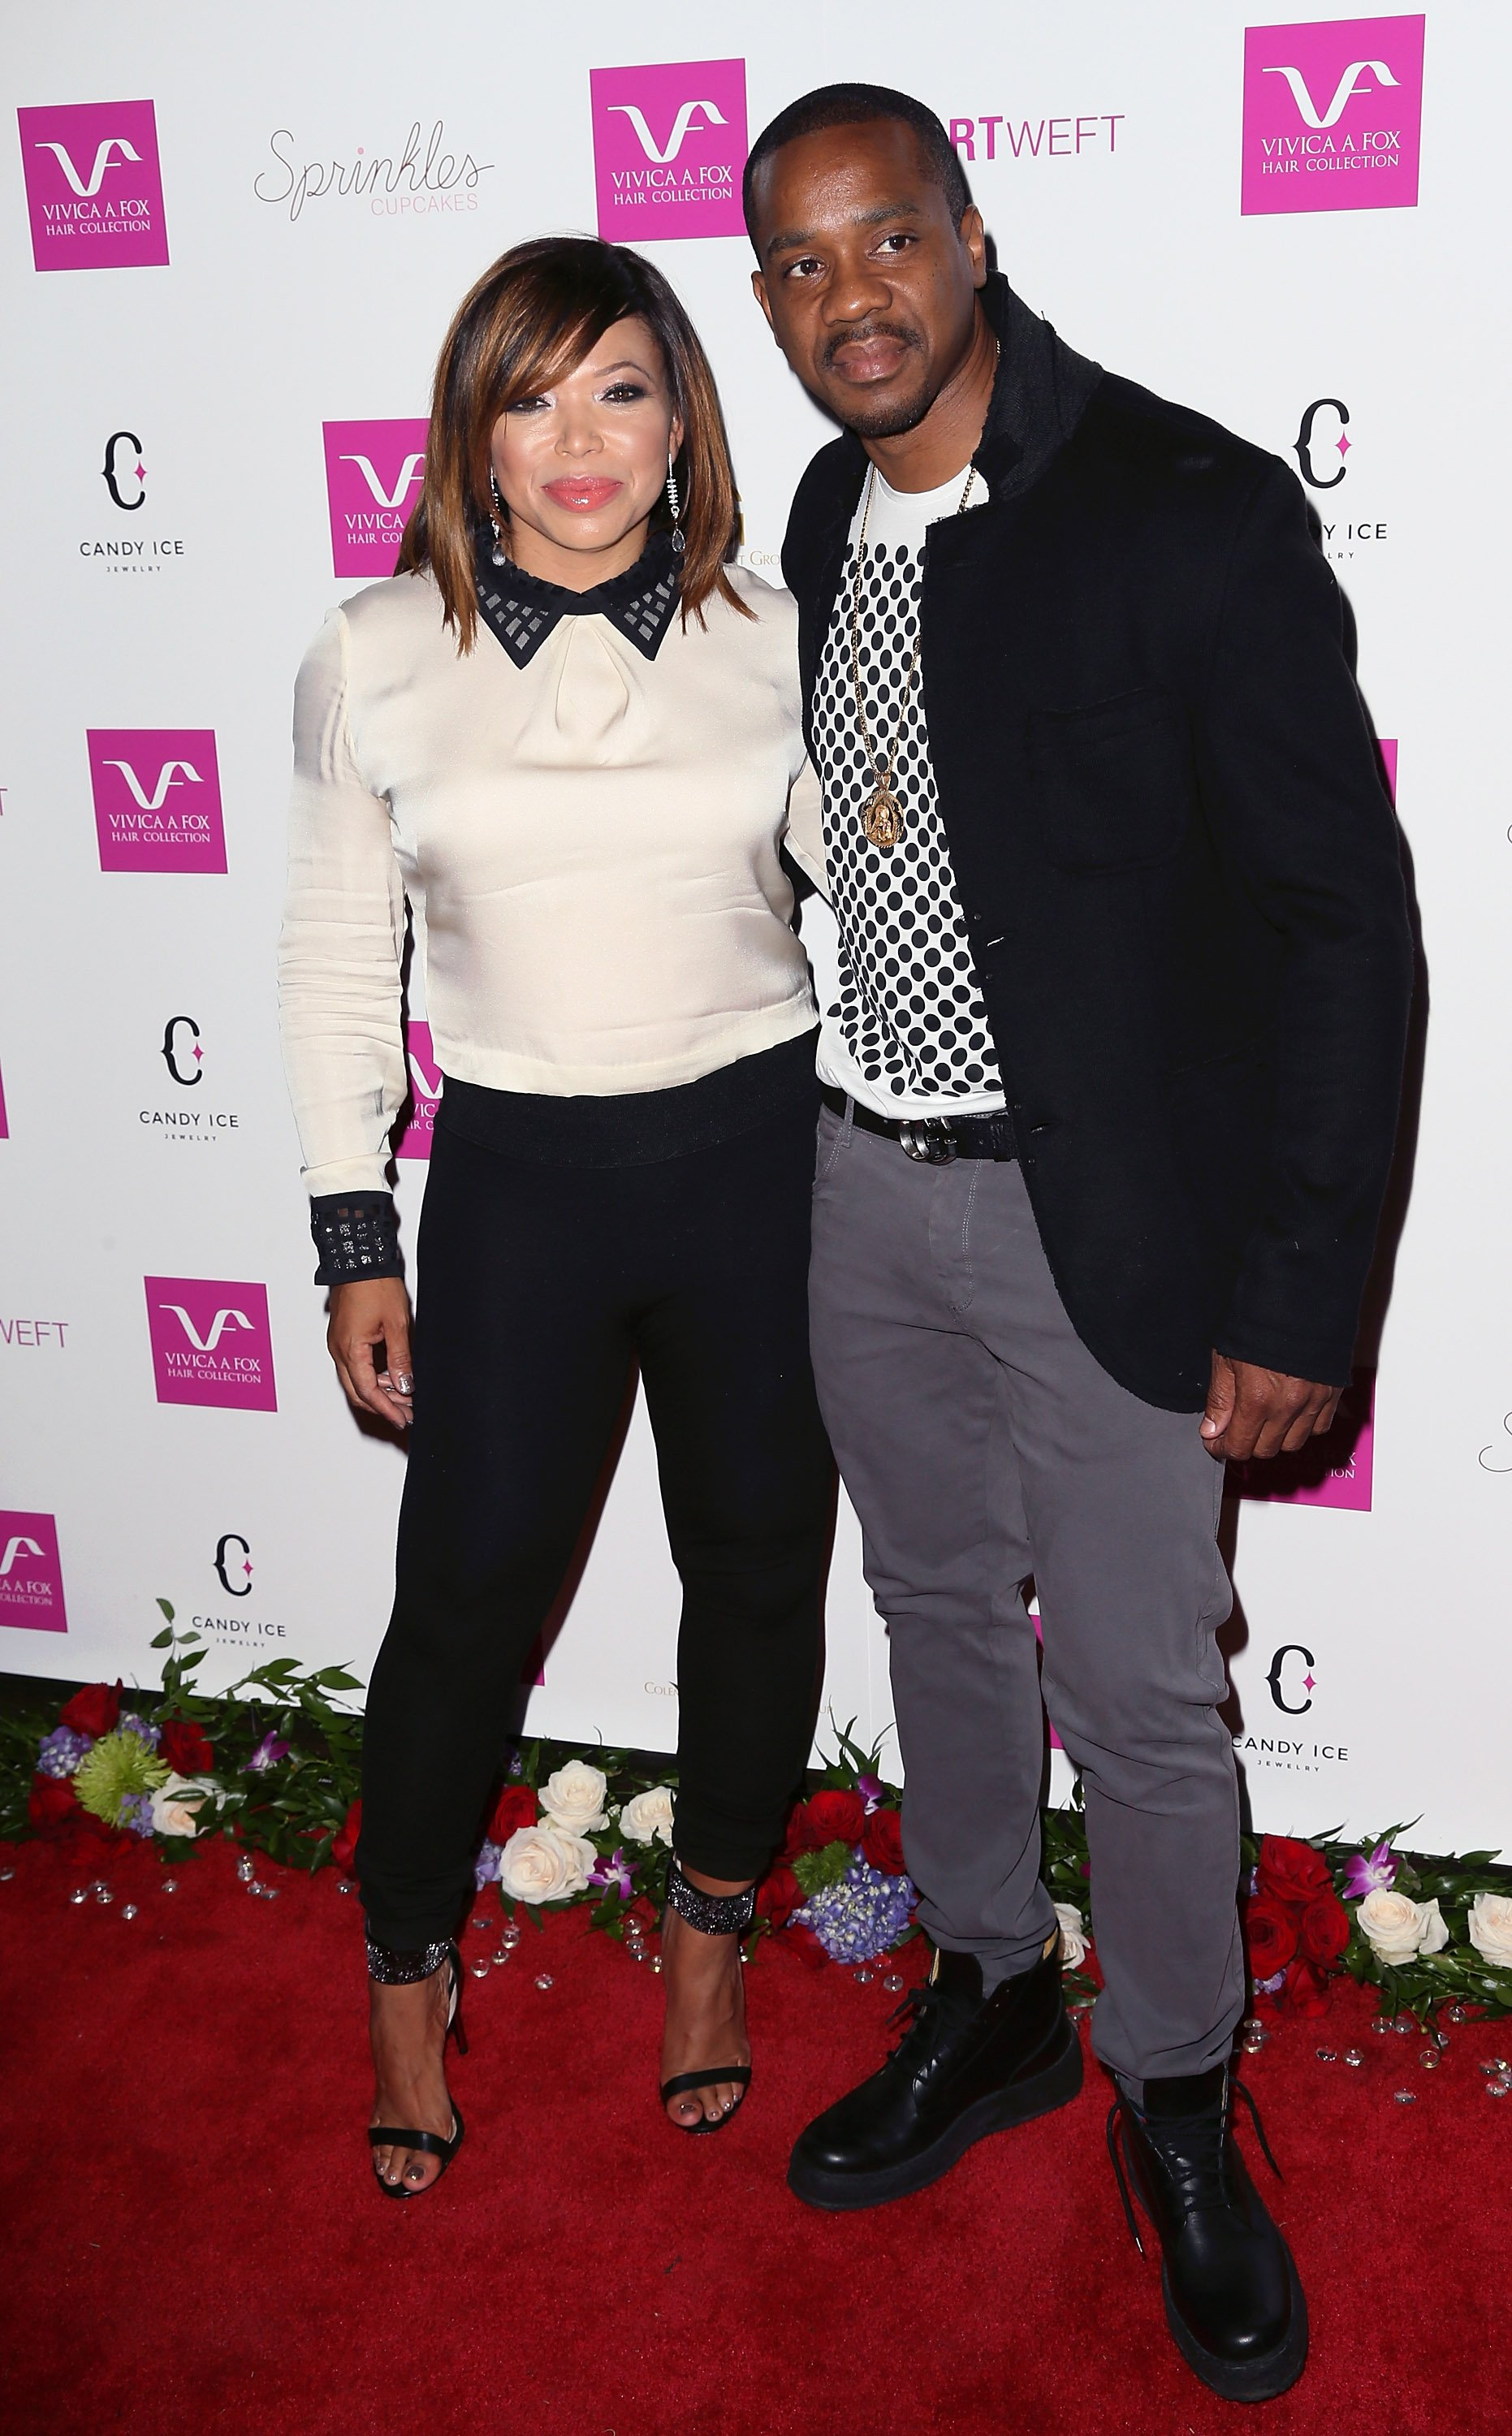 Tisha Campbell-Martin and Duane Martin attending Vivica A. Fox's 50th birthday in August 2014. | Photo: Getty Images